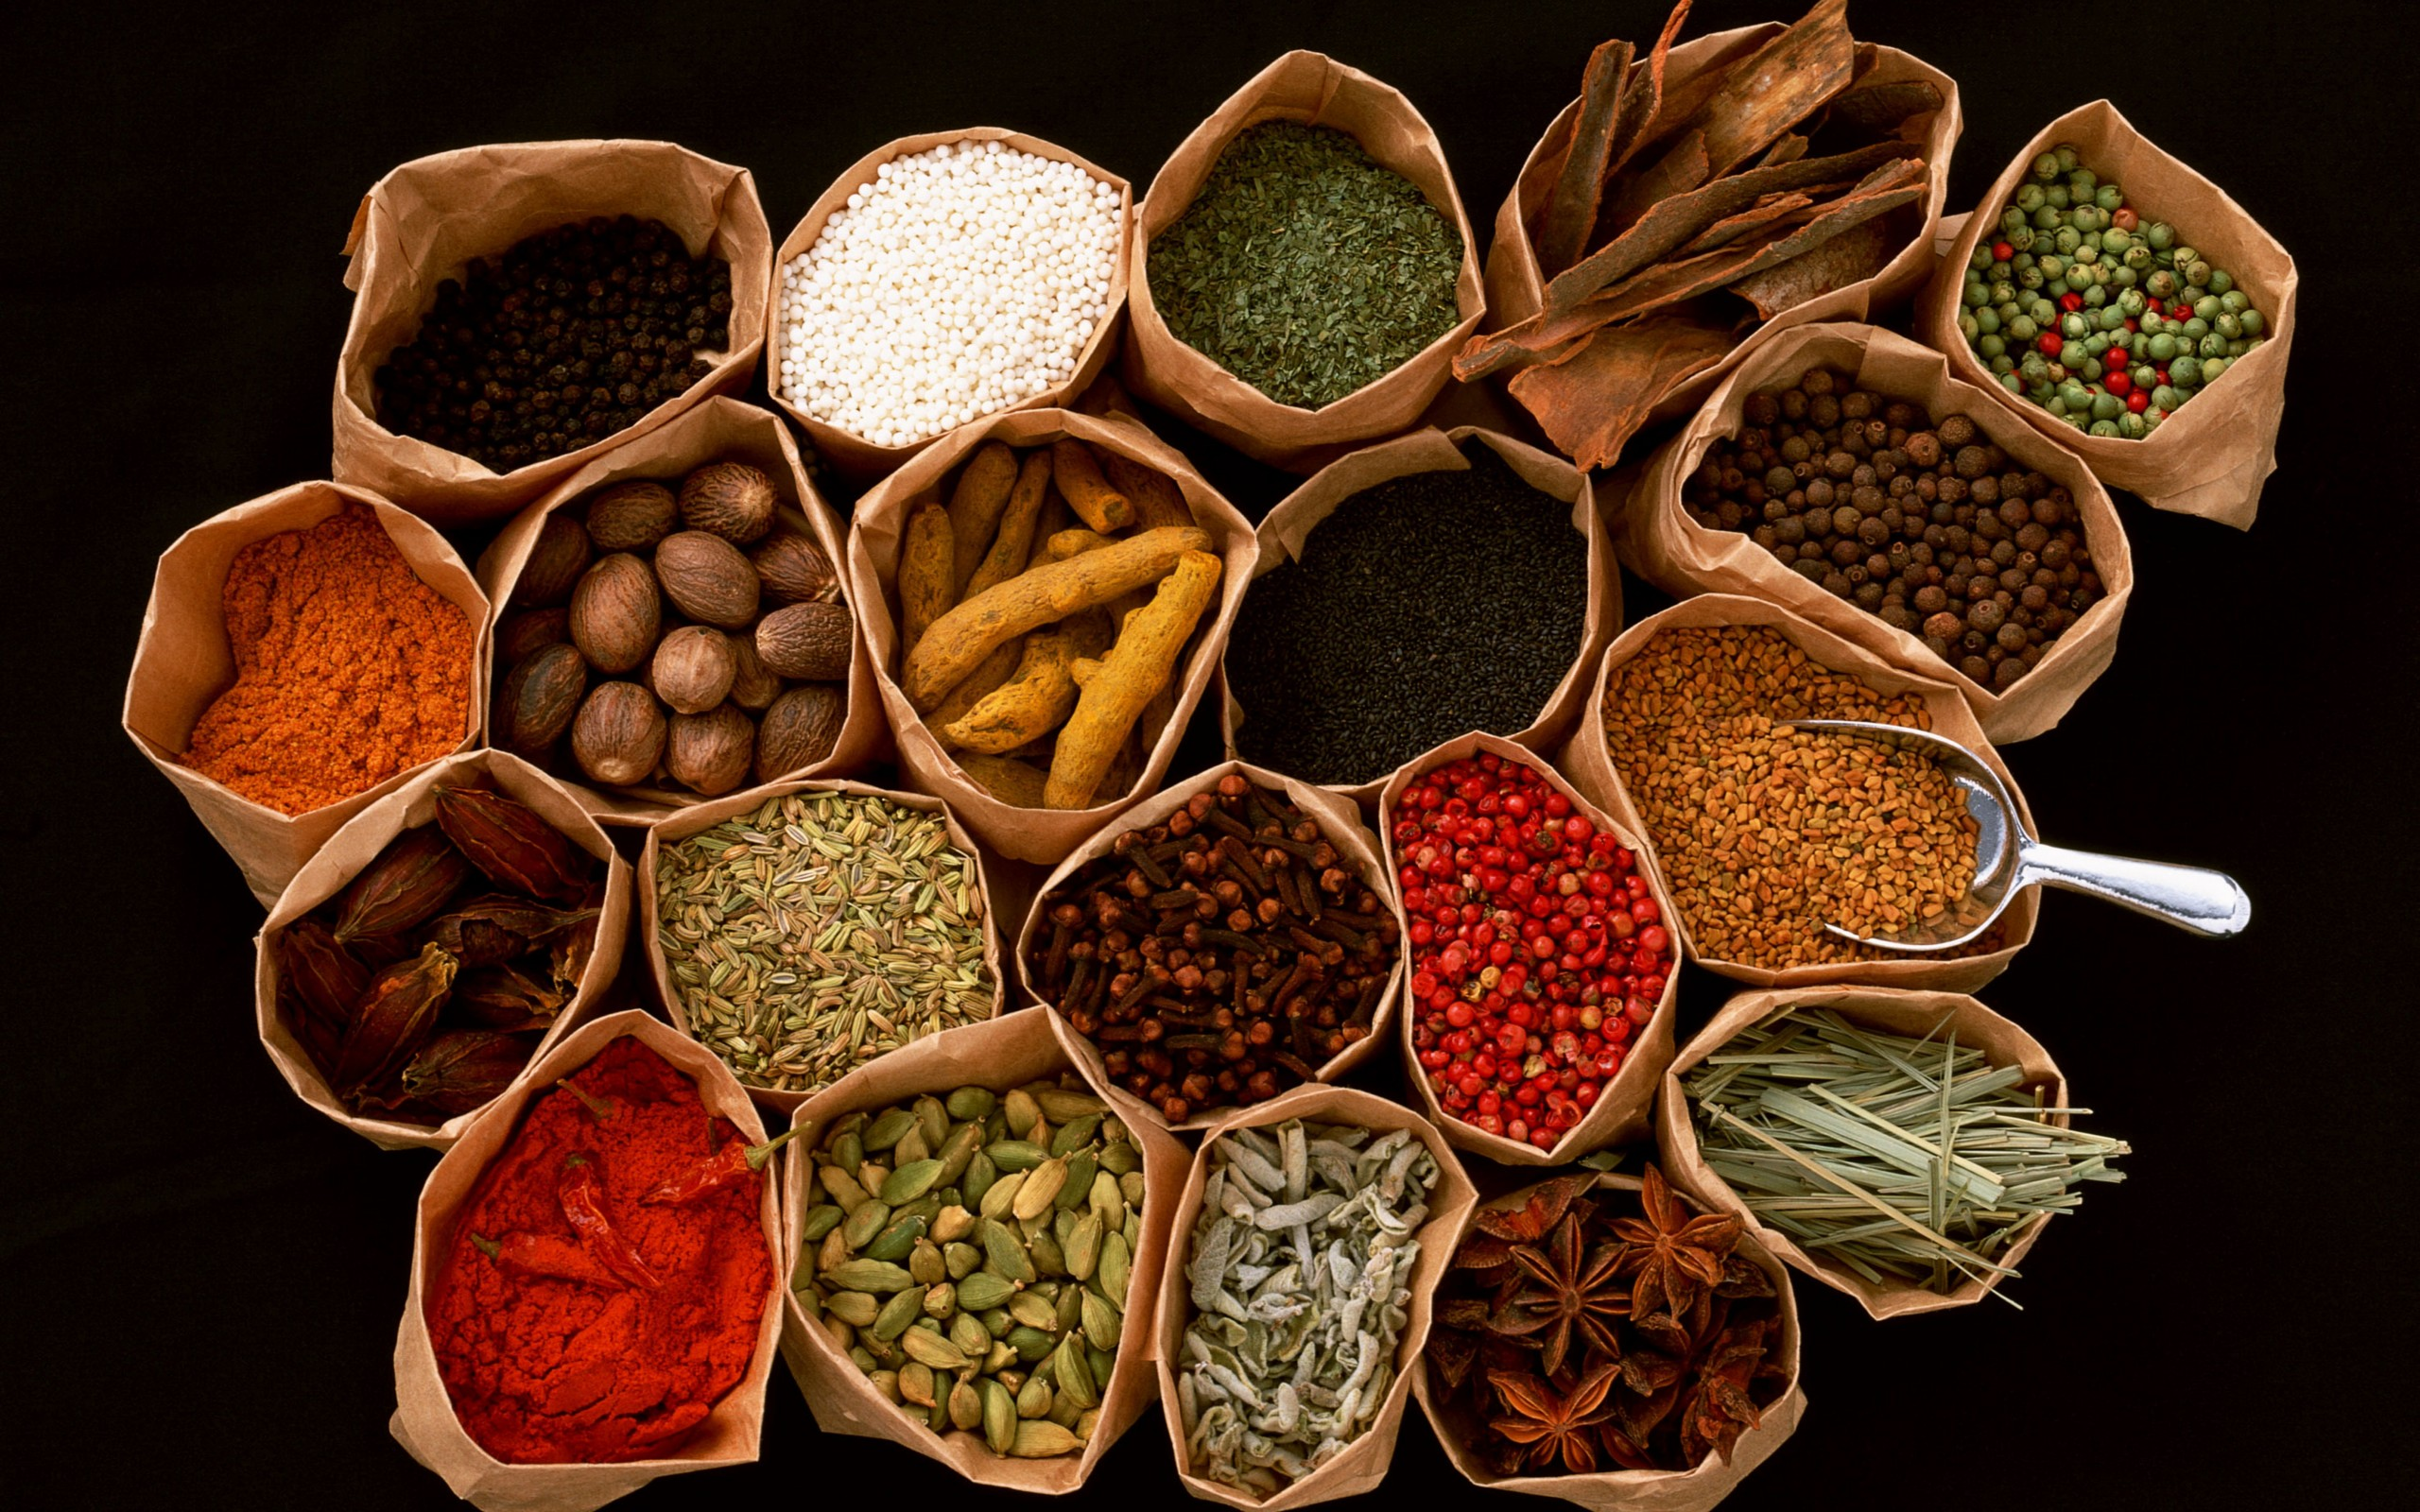 61 Herbs And Spices HD Wallpapers | Backgrounds - Wallpaper Abyss - Page 2